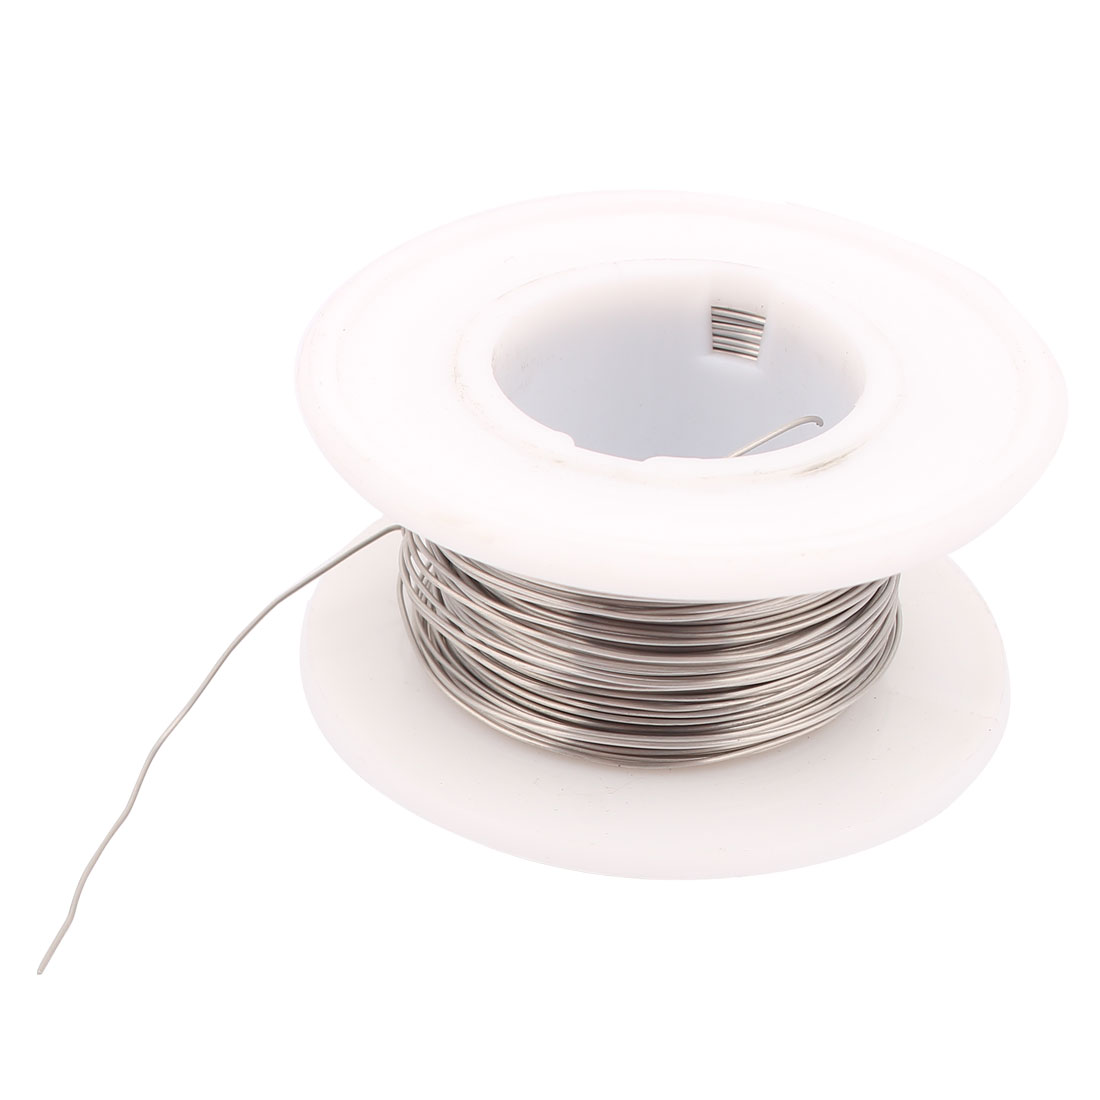 10M 32.8ft 0.35mm 27AWG Cable Nichrome Heater Wire for Heating Elements